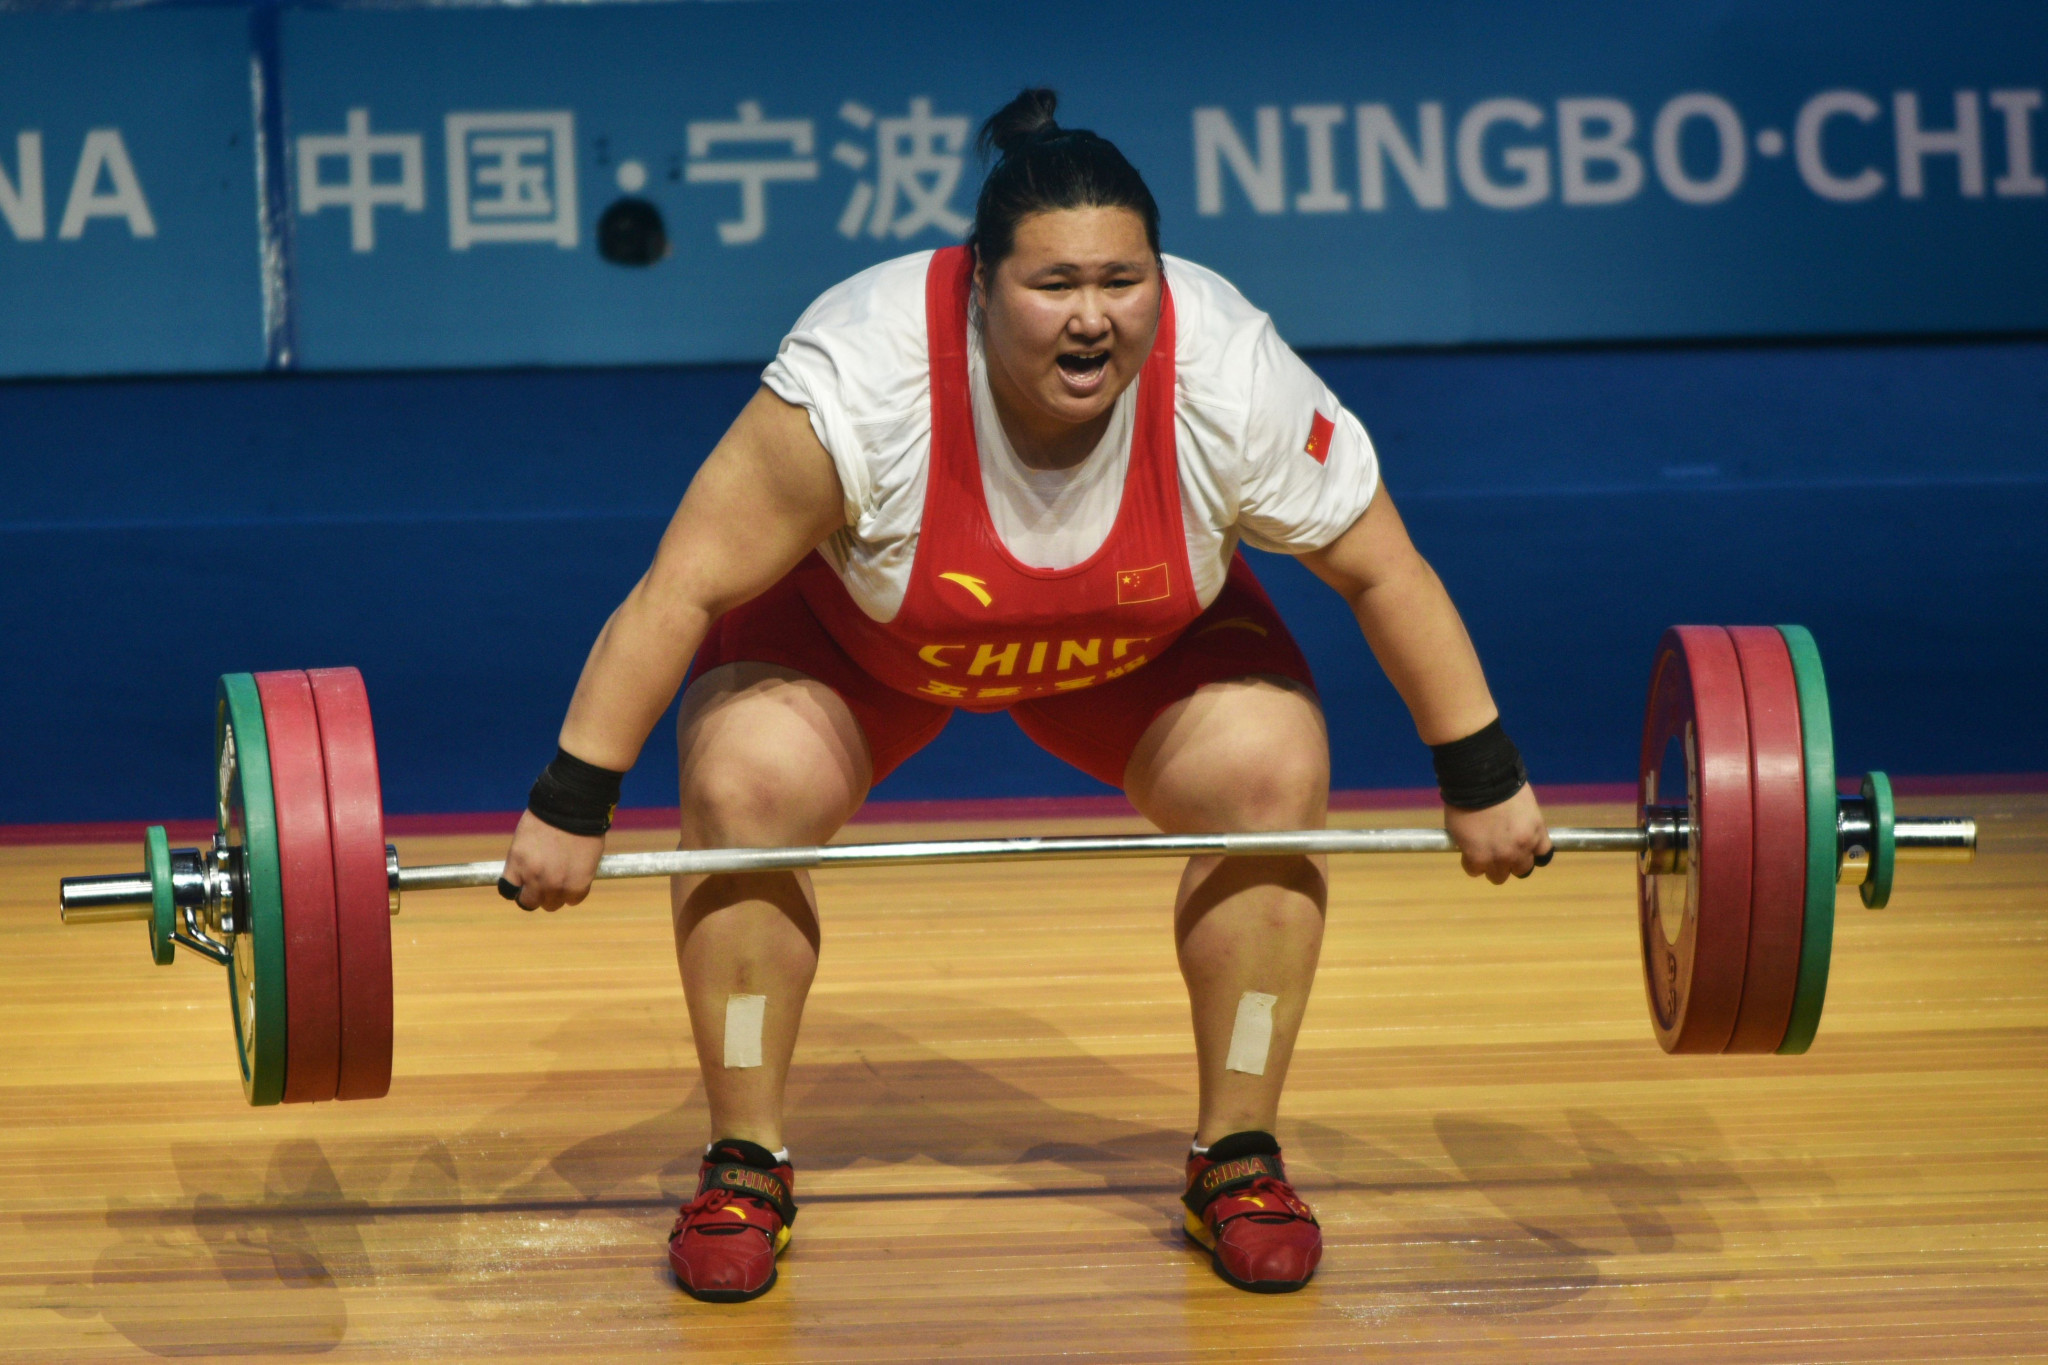 Teenage sensation Li can boost Tokyo 2020 hopes in Junior World Championships